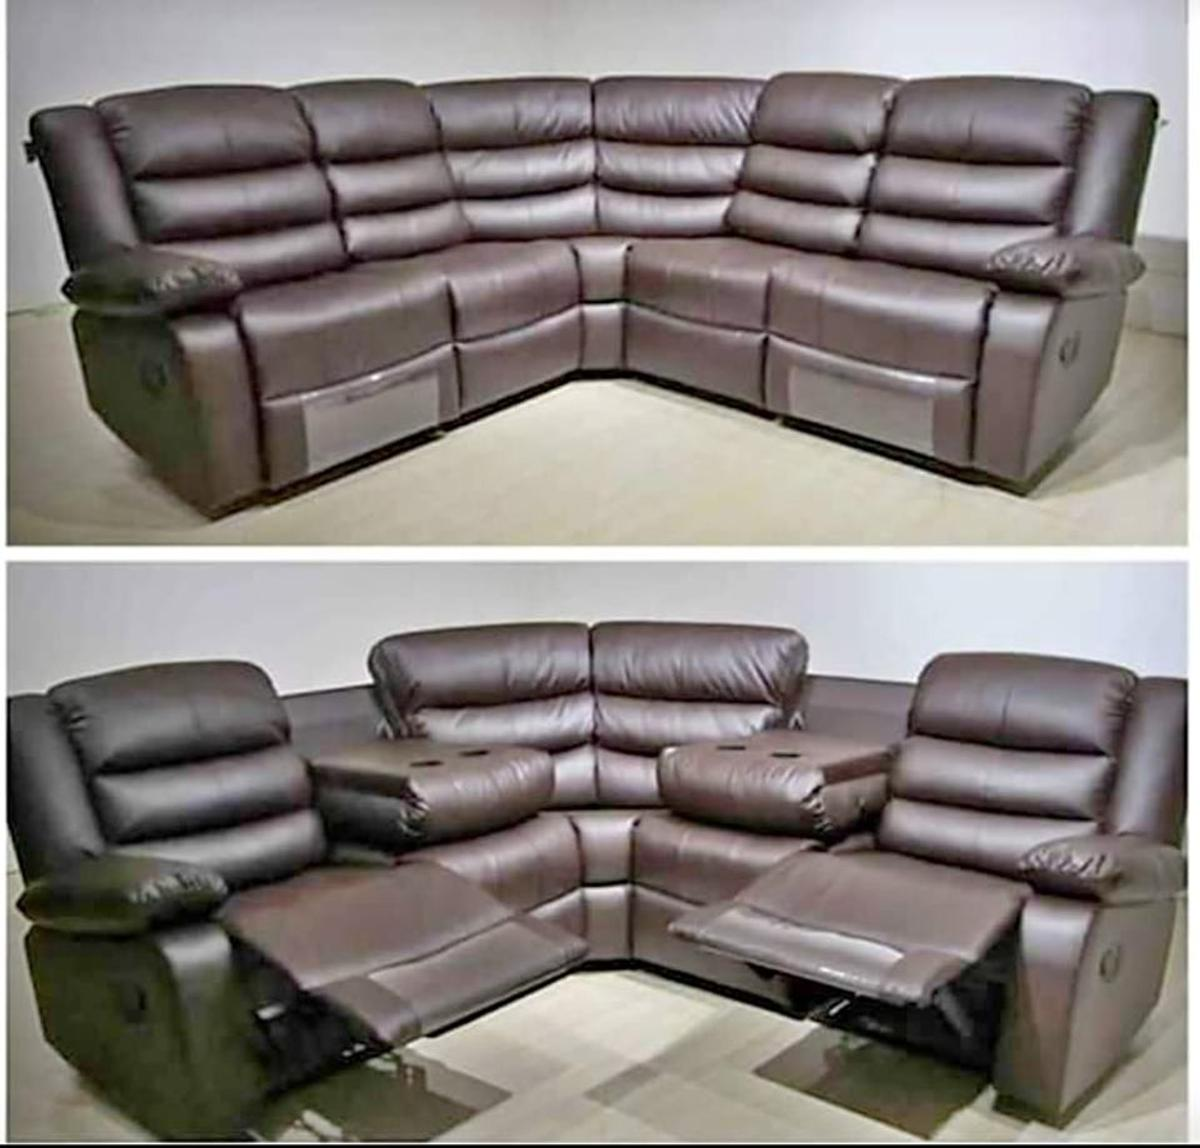 Tremendous 2019 Biggest Clearance Sale Recliner Sofa In Ss16 Bralicious Painted Fabric Chair Ideas Braliciousco